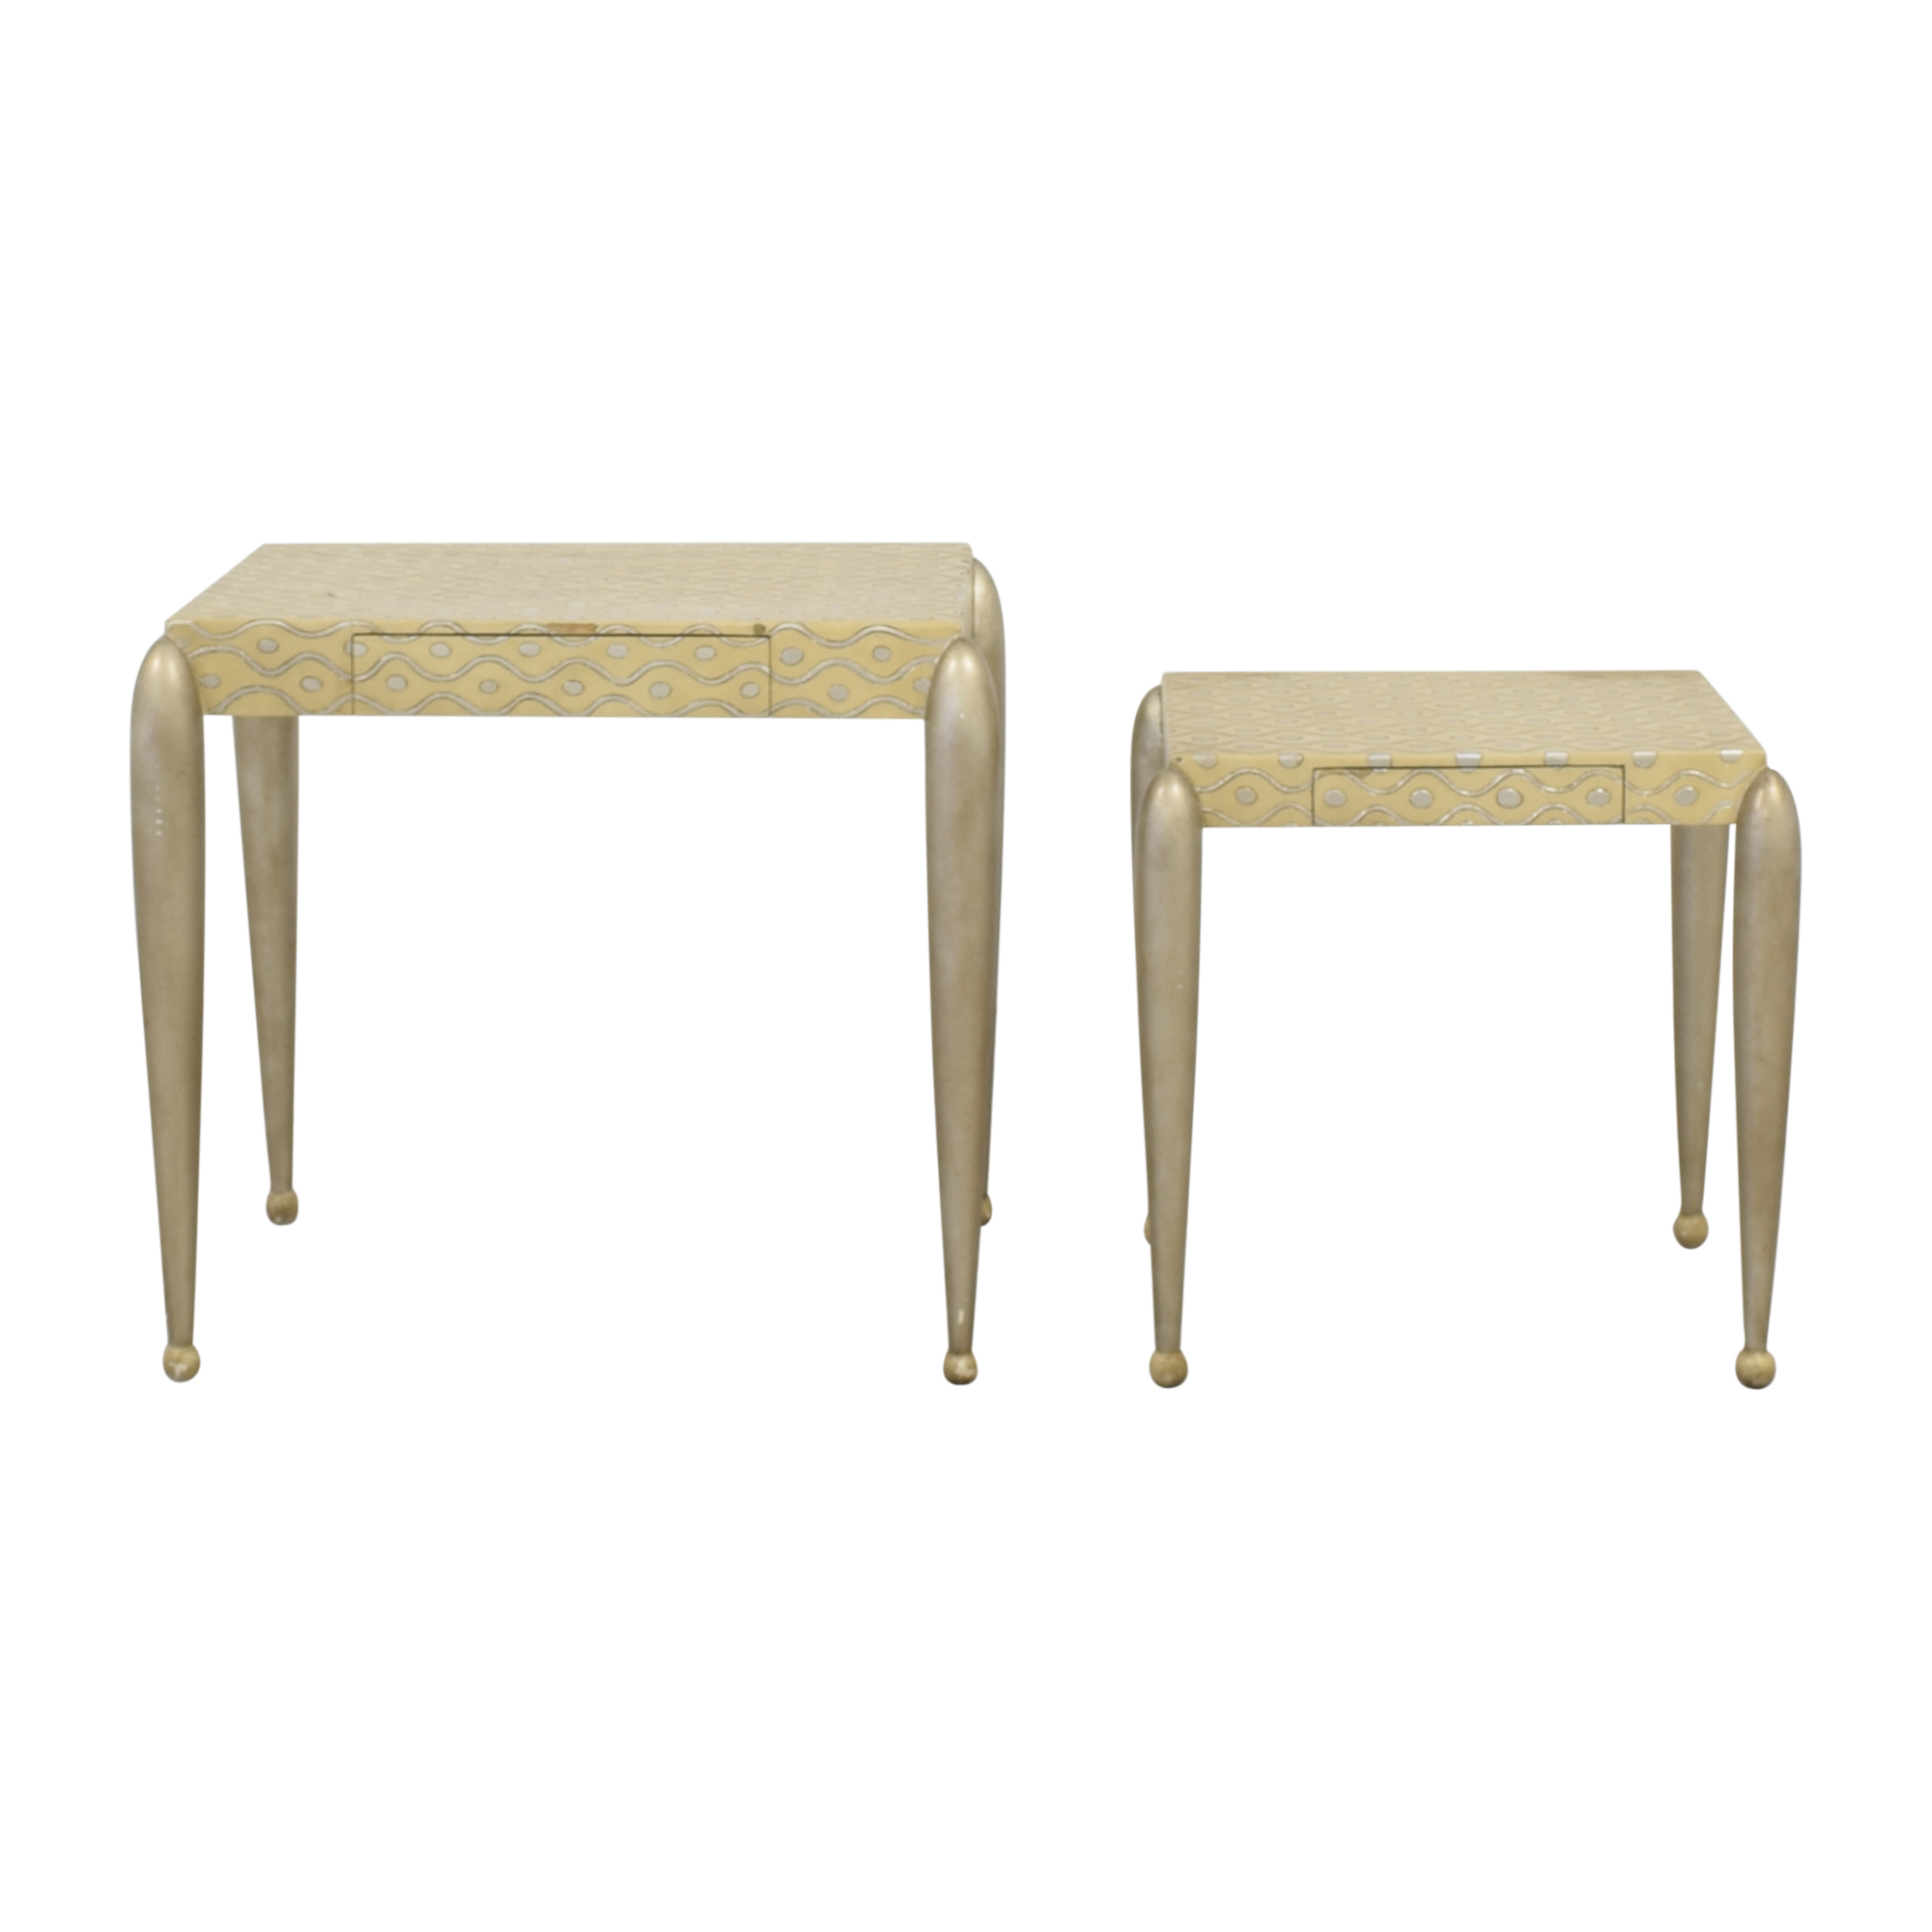 shop African Inspired Nesting Tables with Drawers ABC Carpet & Home Accent Tables